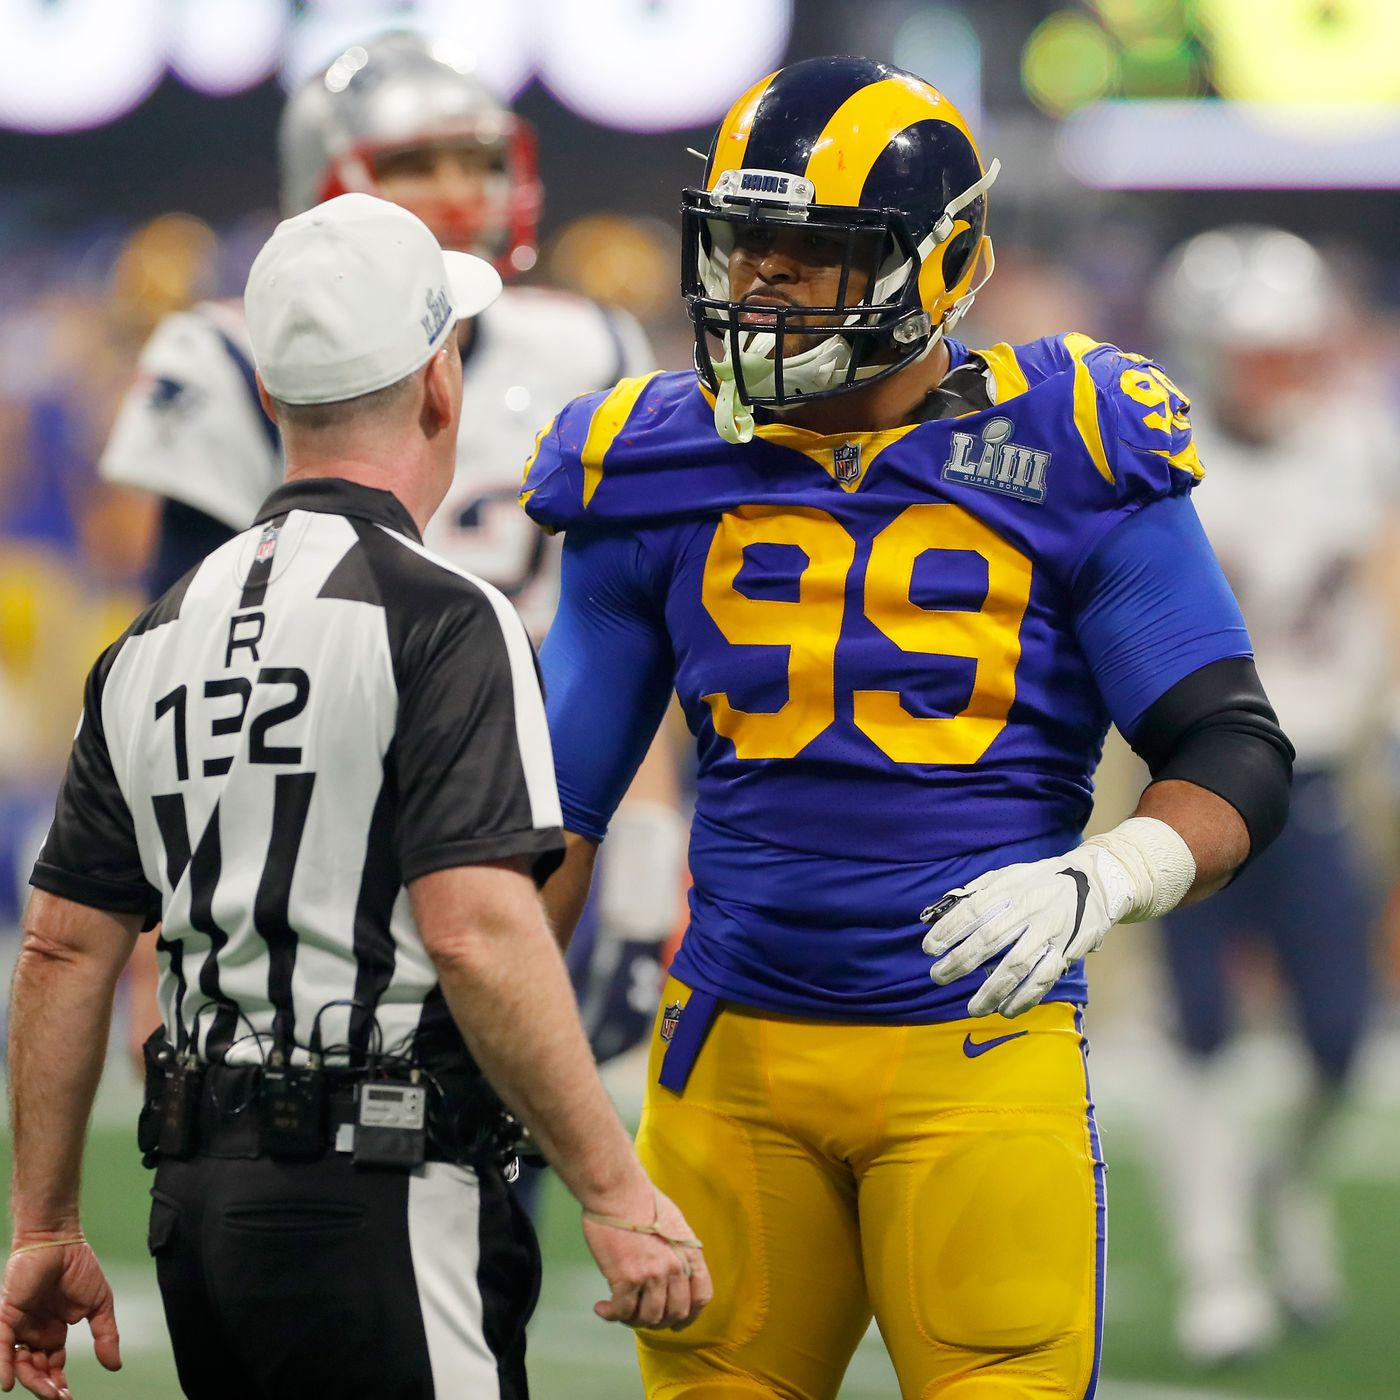 La Rams Dt Aaron Donald Wanted 97 But Price Was Too High Turf Show Times